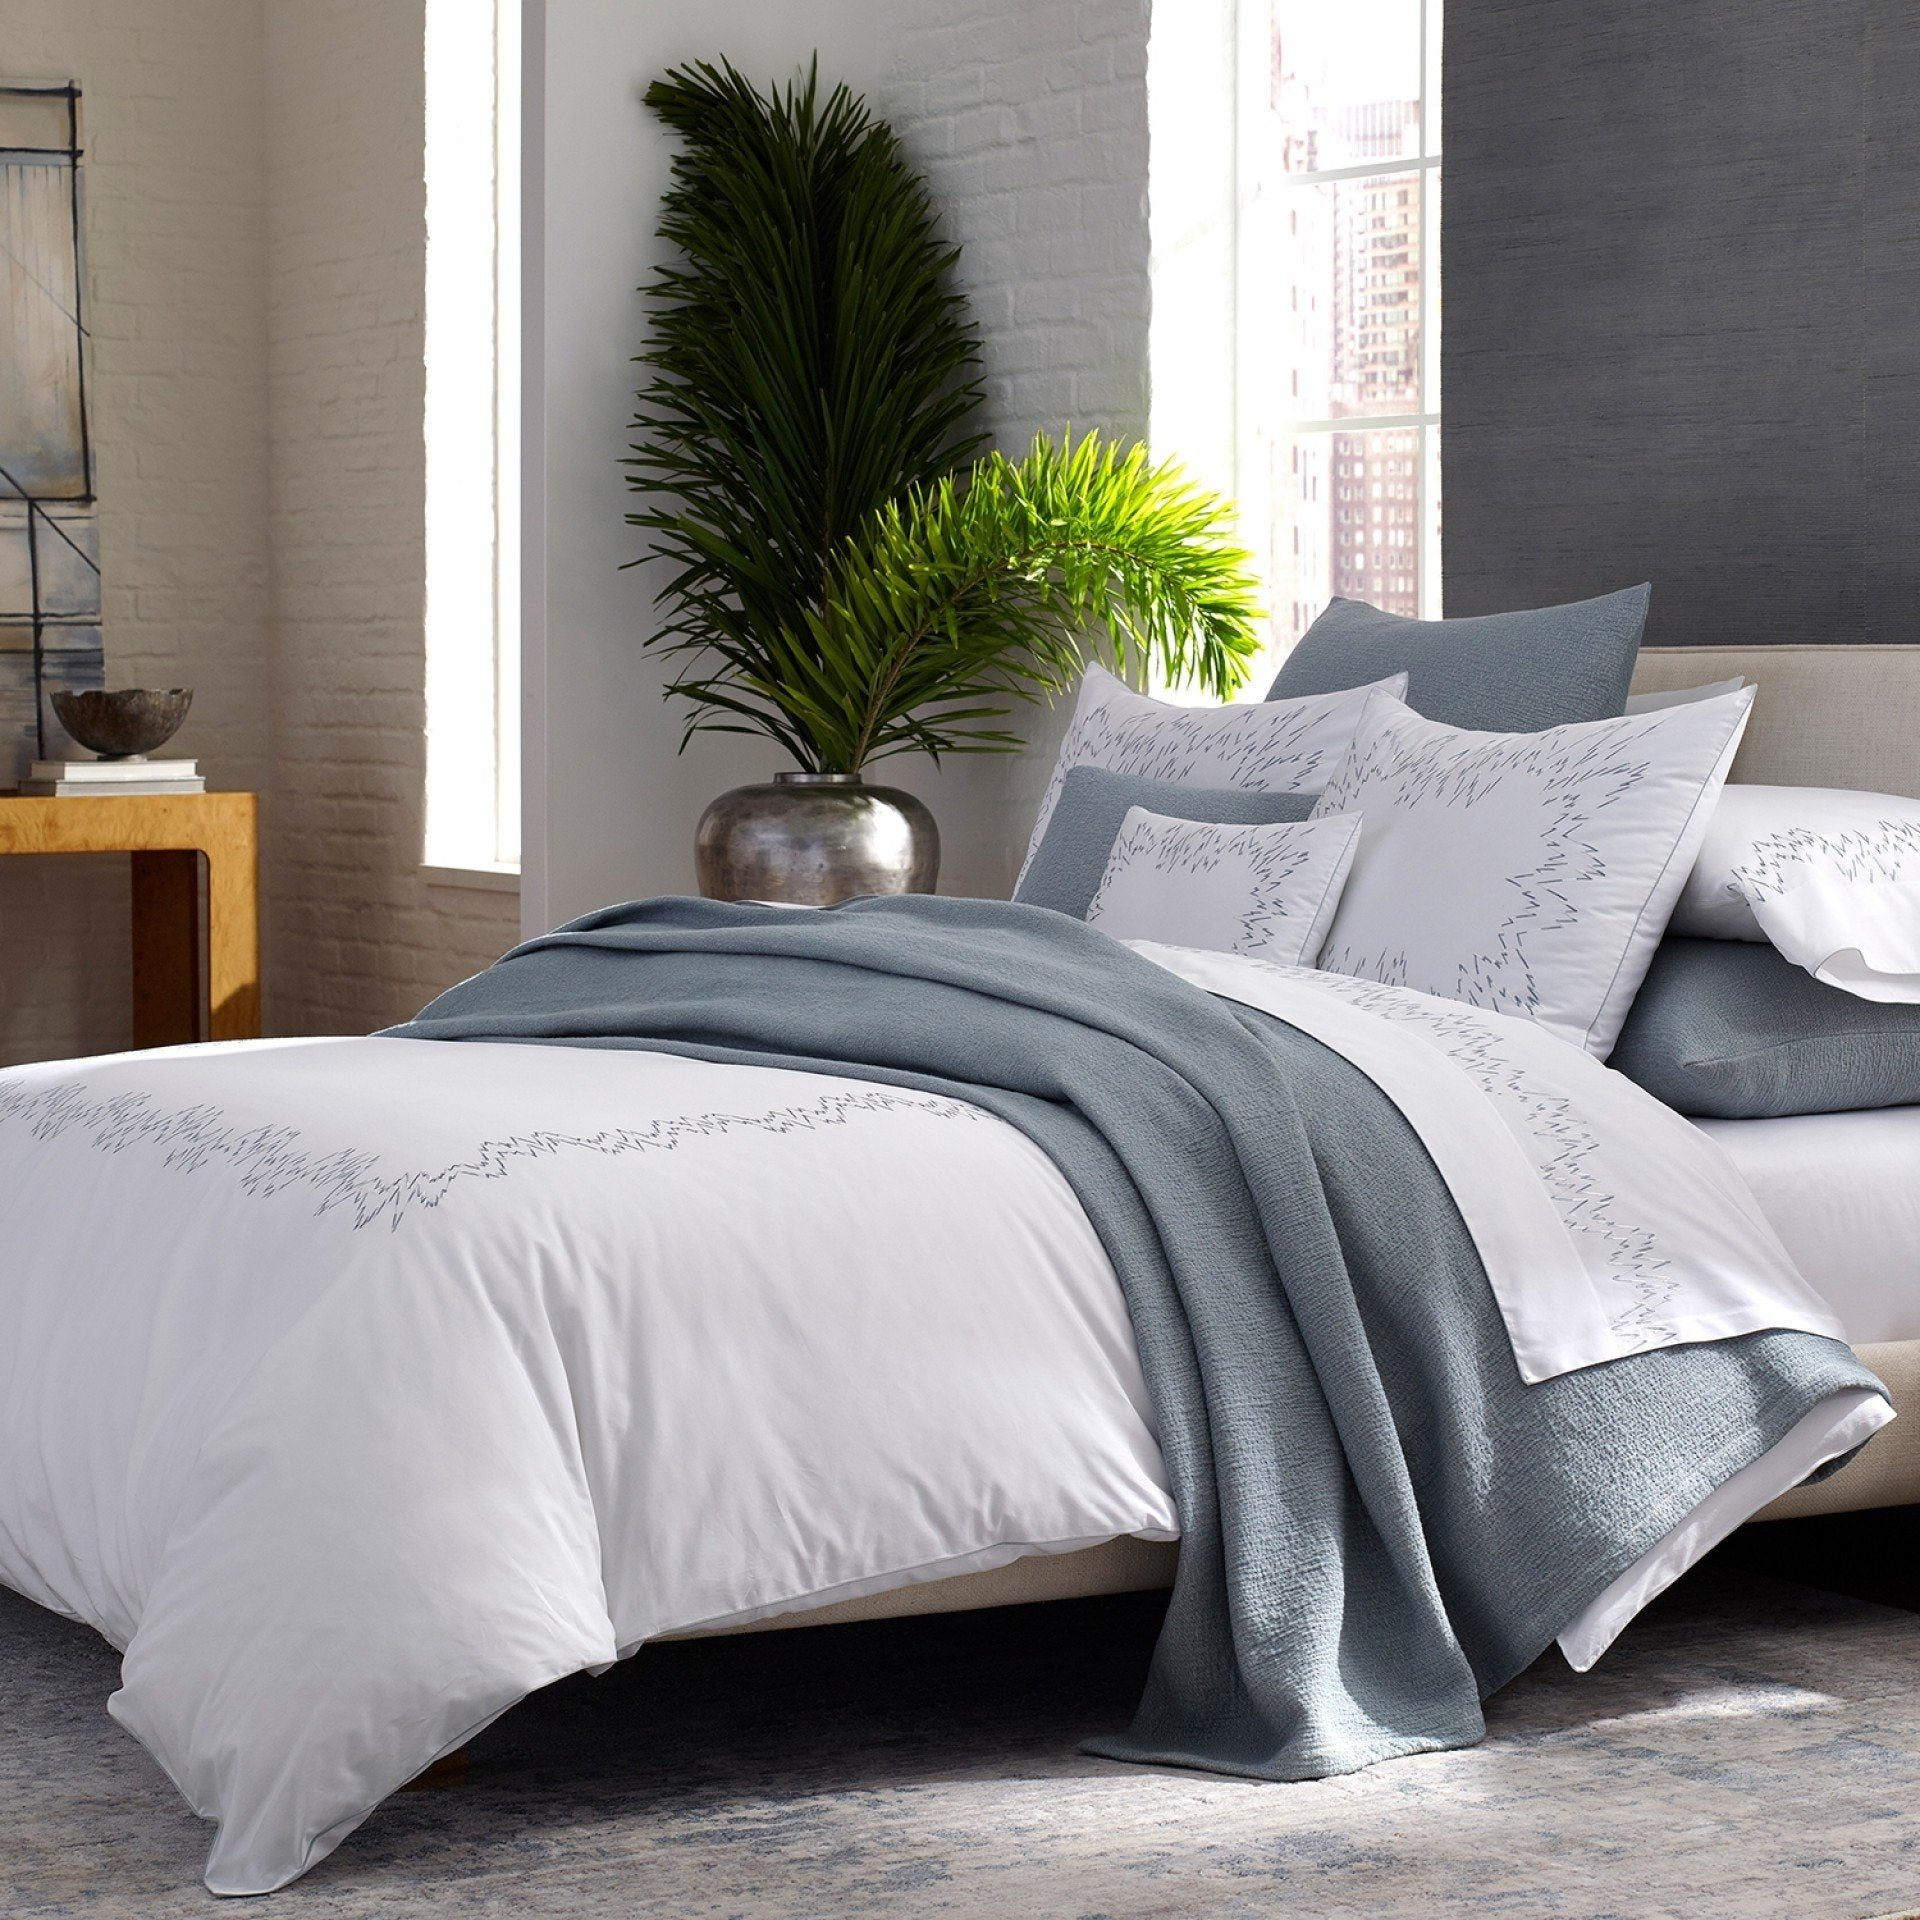 Aries Bedding Collection by Matouk